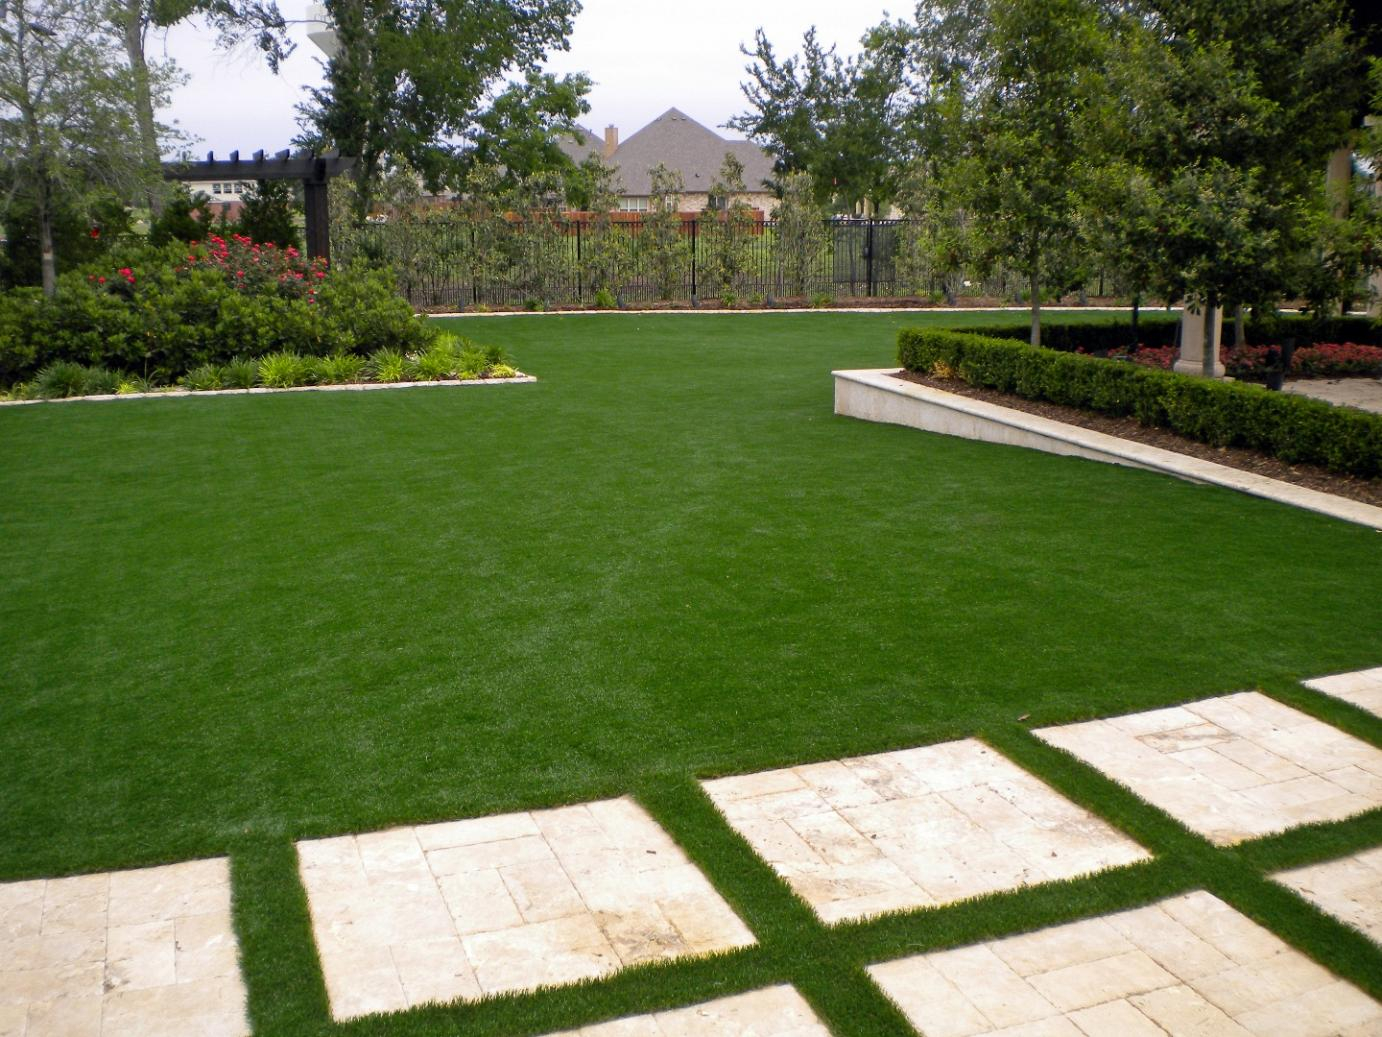 Artificial Turf Cost Sycamore Georgia Landscape Photos Beautiful throughout Cost Of Backyard Landscaping